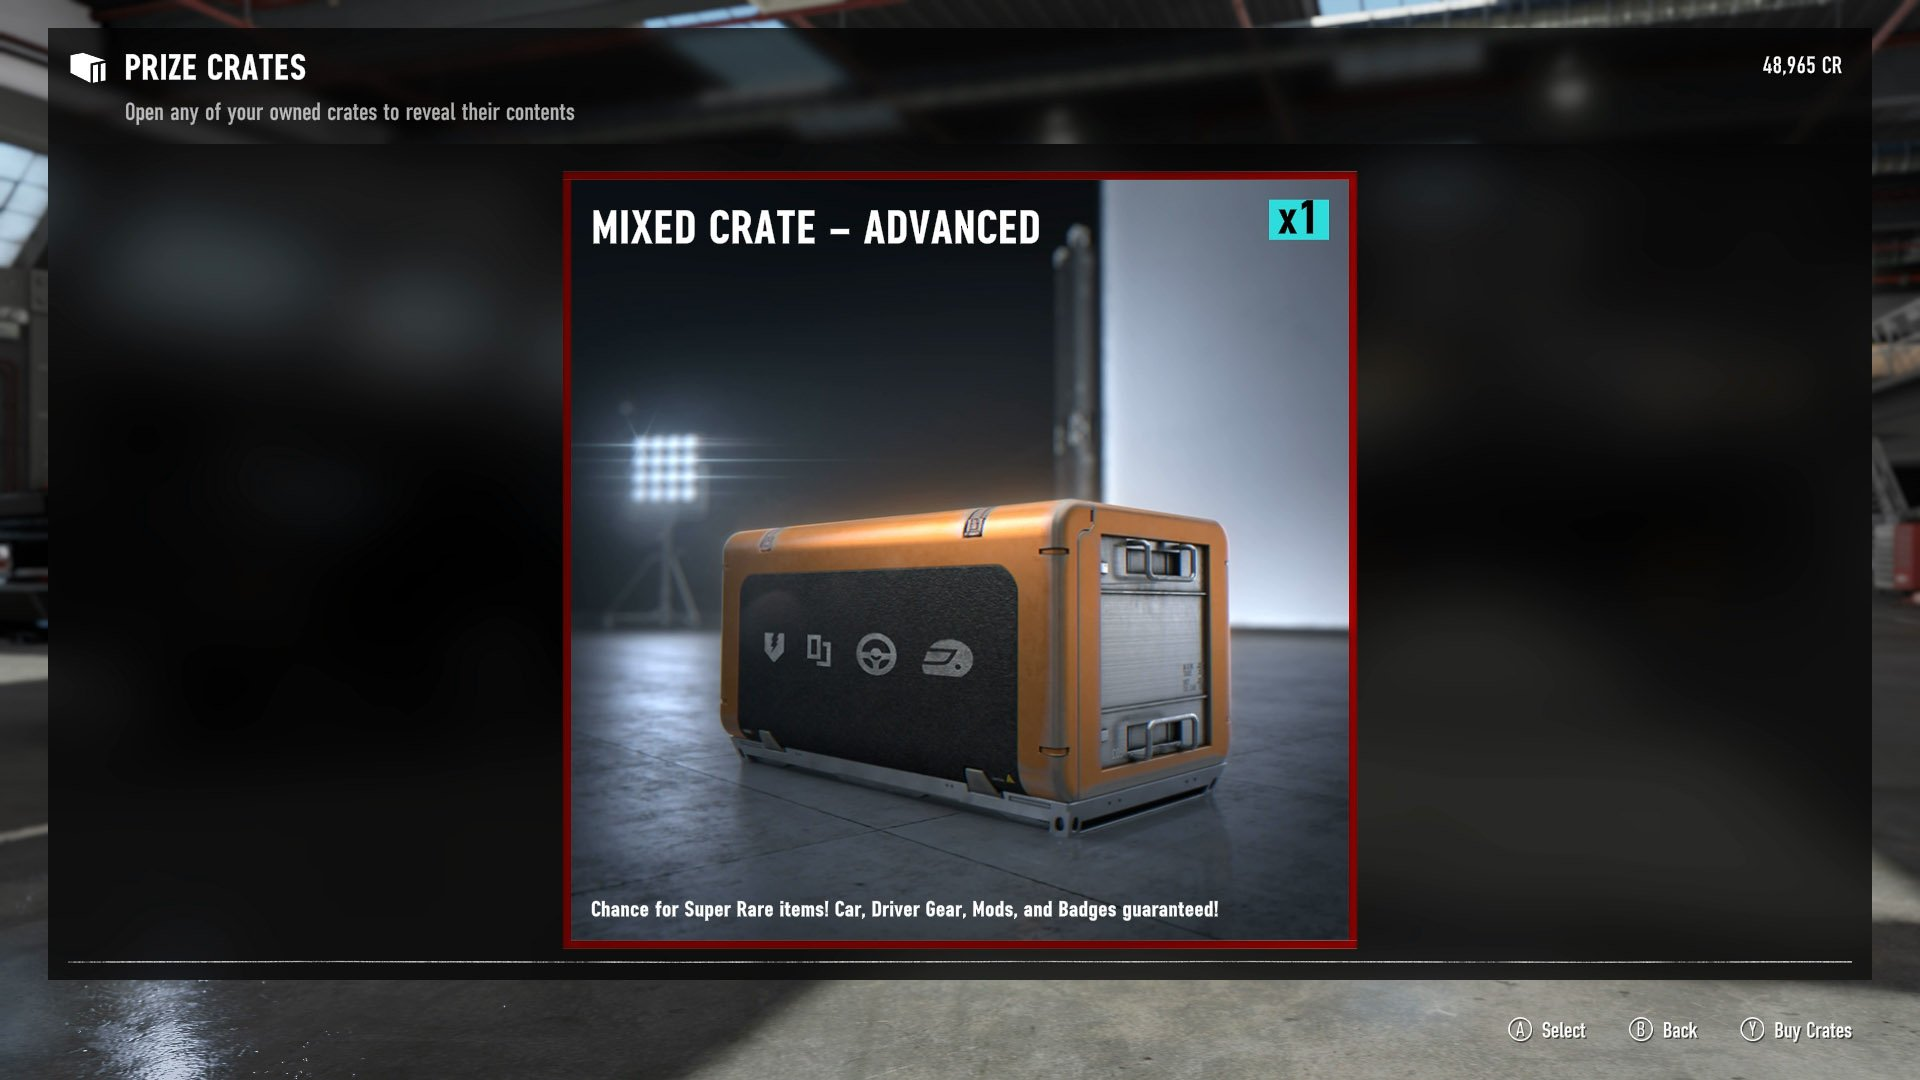 Loot crates contain mods, as well as other vehicles and driver cosmetics.